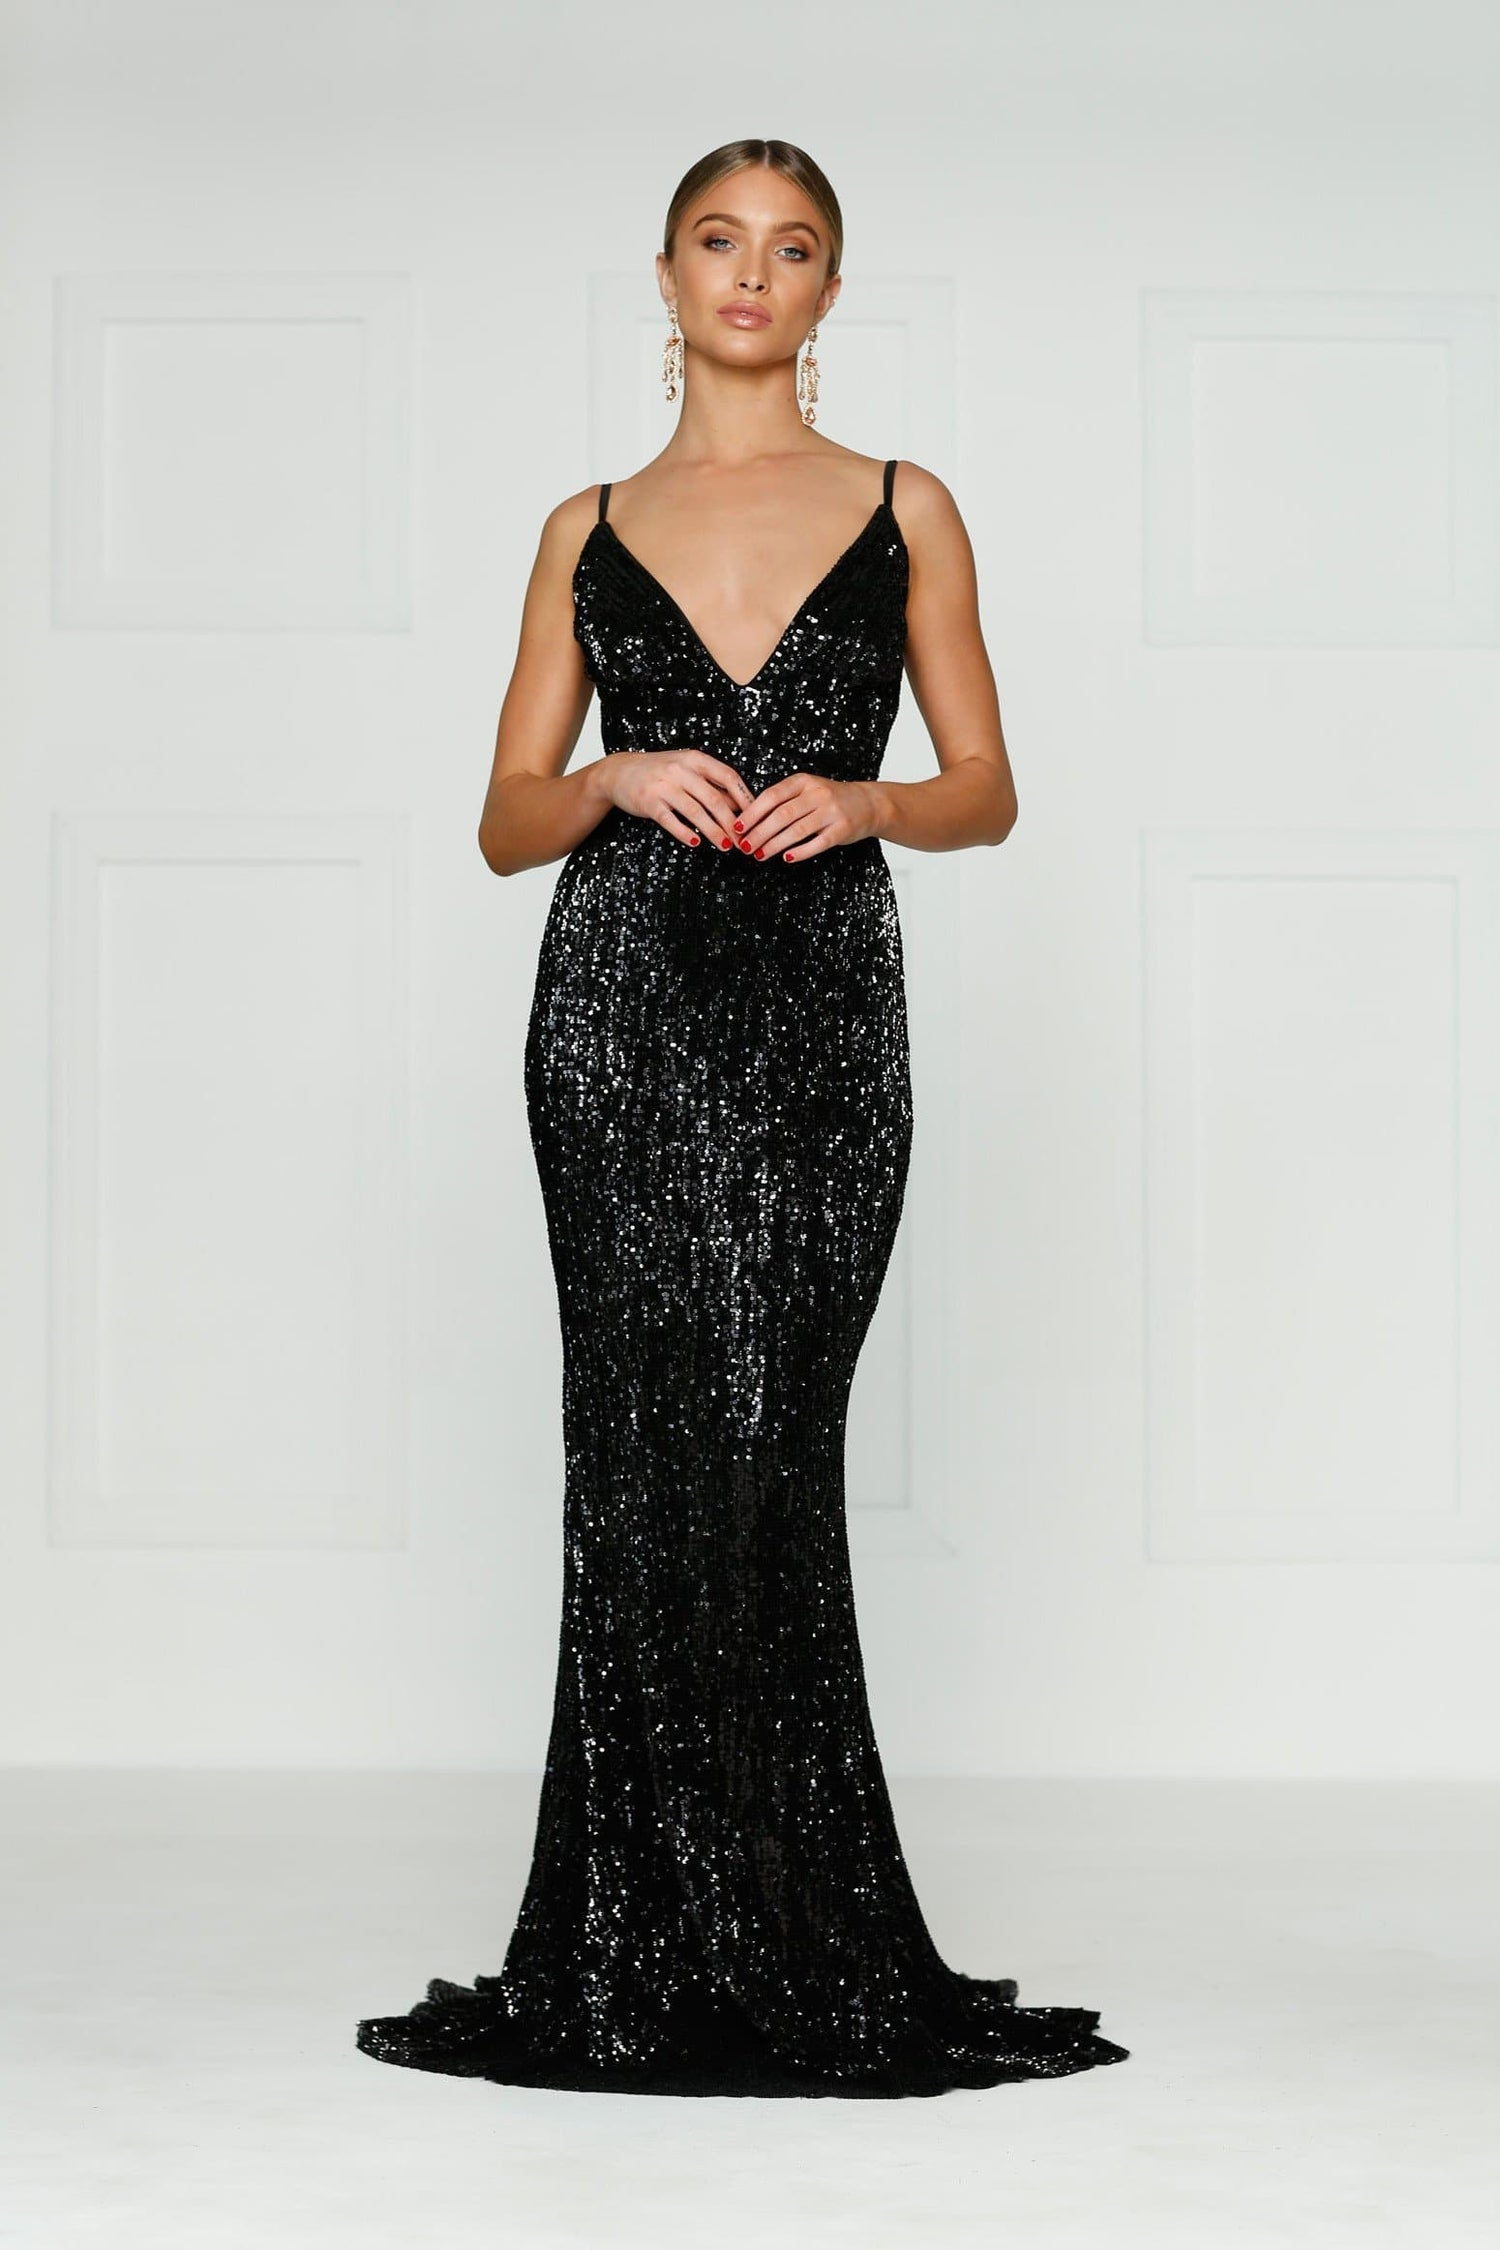 A&N Cynthia- Black Sequinned Gown with V Neck and Low Back